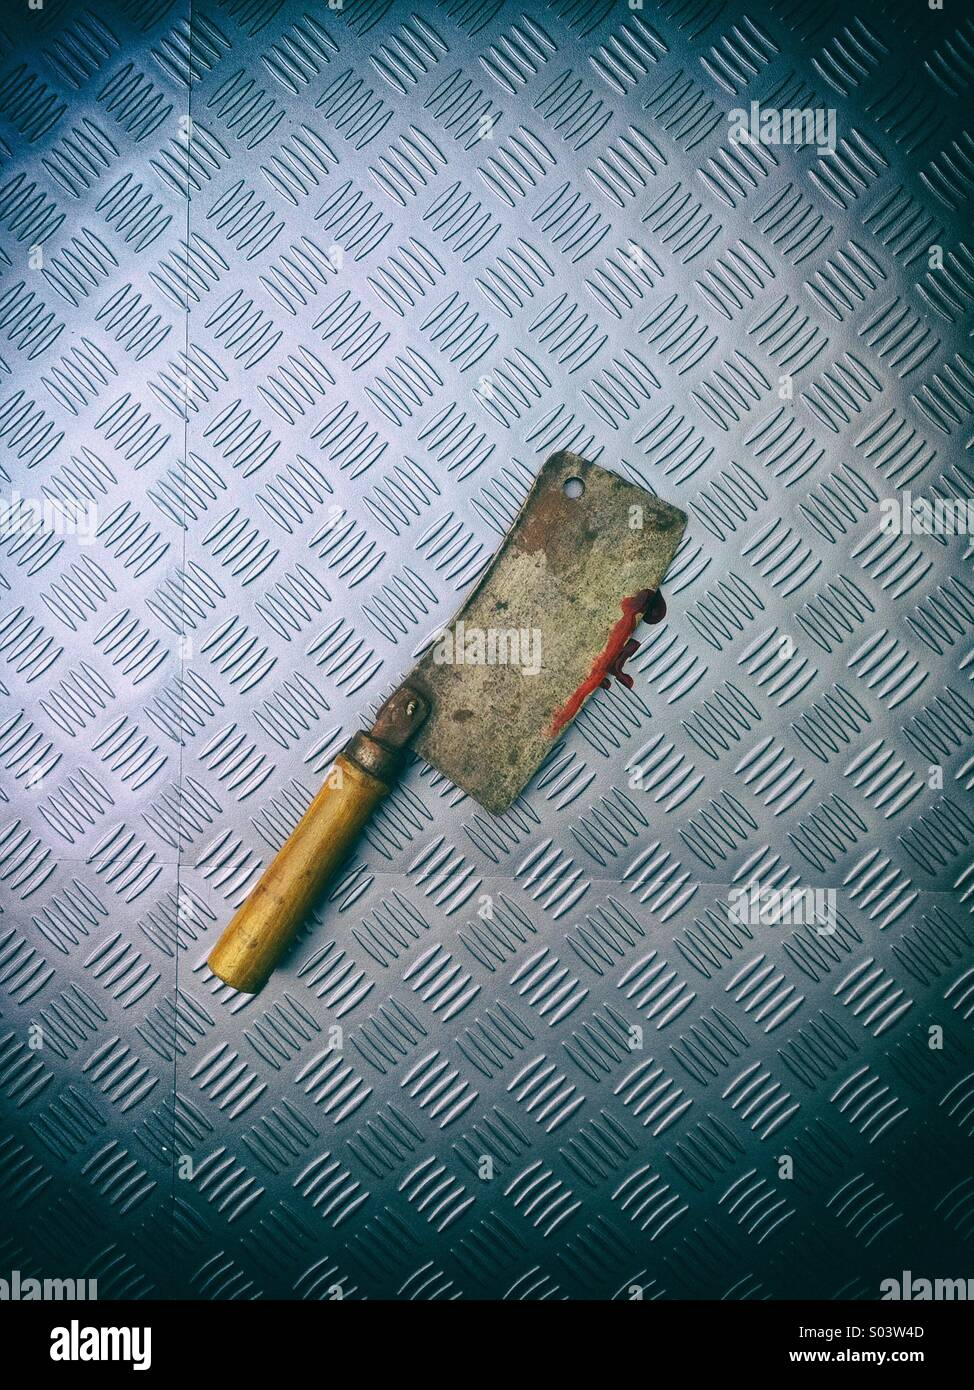 Meat Murder Stock Photos Amp Meat Murder Stock Images Alamy